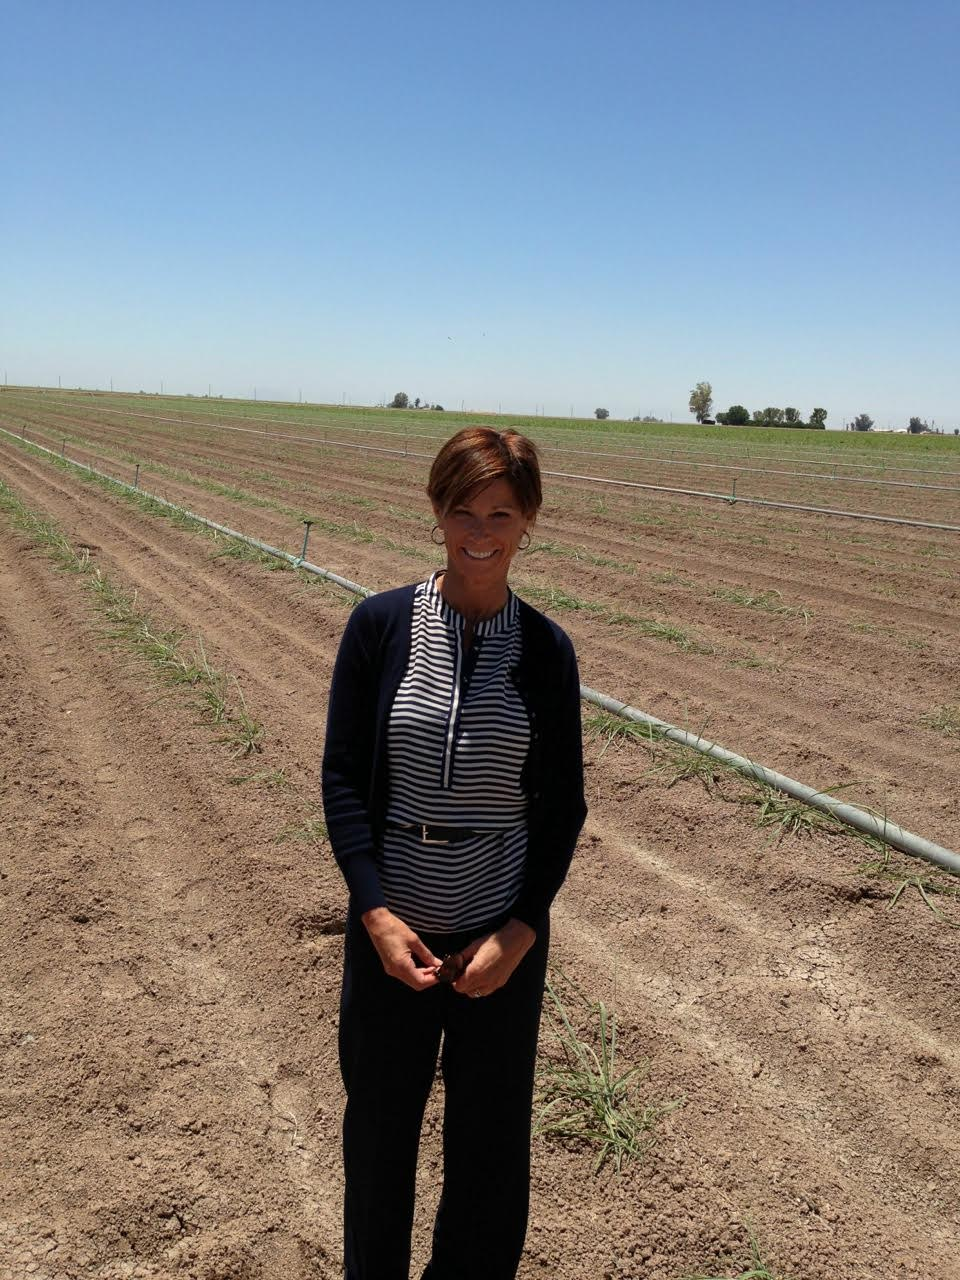 The idea of increasing agricultural efficiency applies to traditional - Vonnie Estes